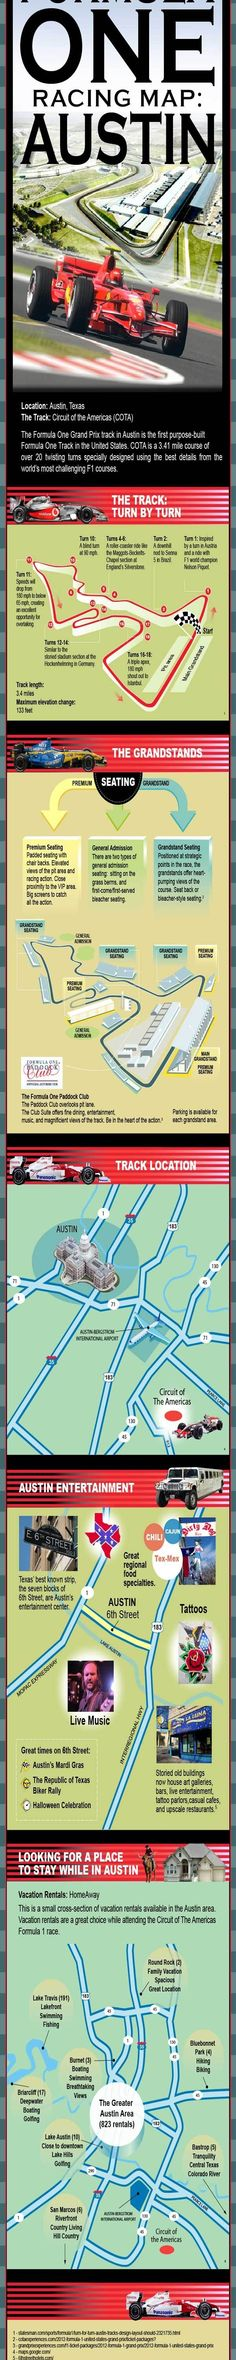 Austin Prepares To Welcome Formula One | After a five-year absence, Formula 1 racing returns to the US with the Austin, TX, Circuit of the Americas Grand Prix held November 16-18. The city is gearing up for 120,000 fans to attend Friday's practices, Saturday's qualifying round and Sunday's race. | Austin Texas Real Estate Experts Finding Homes For Sale